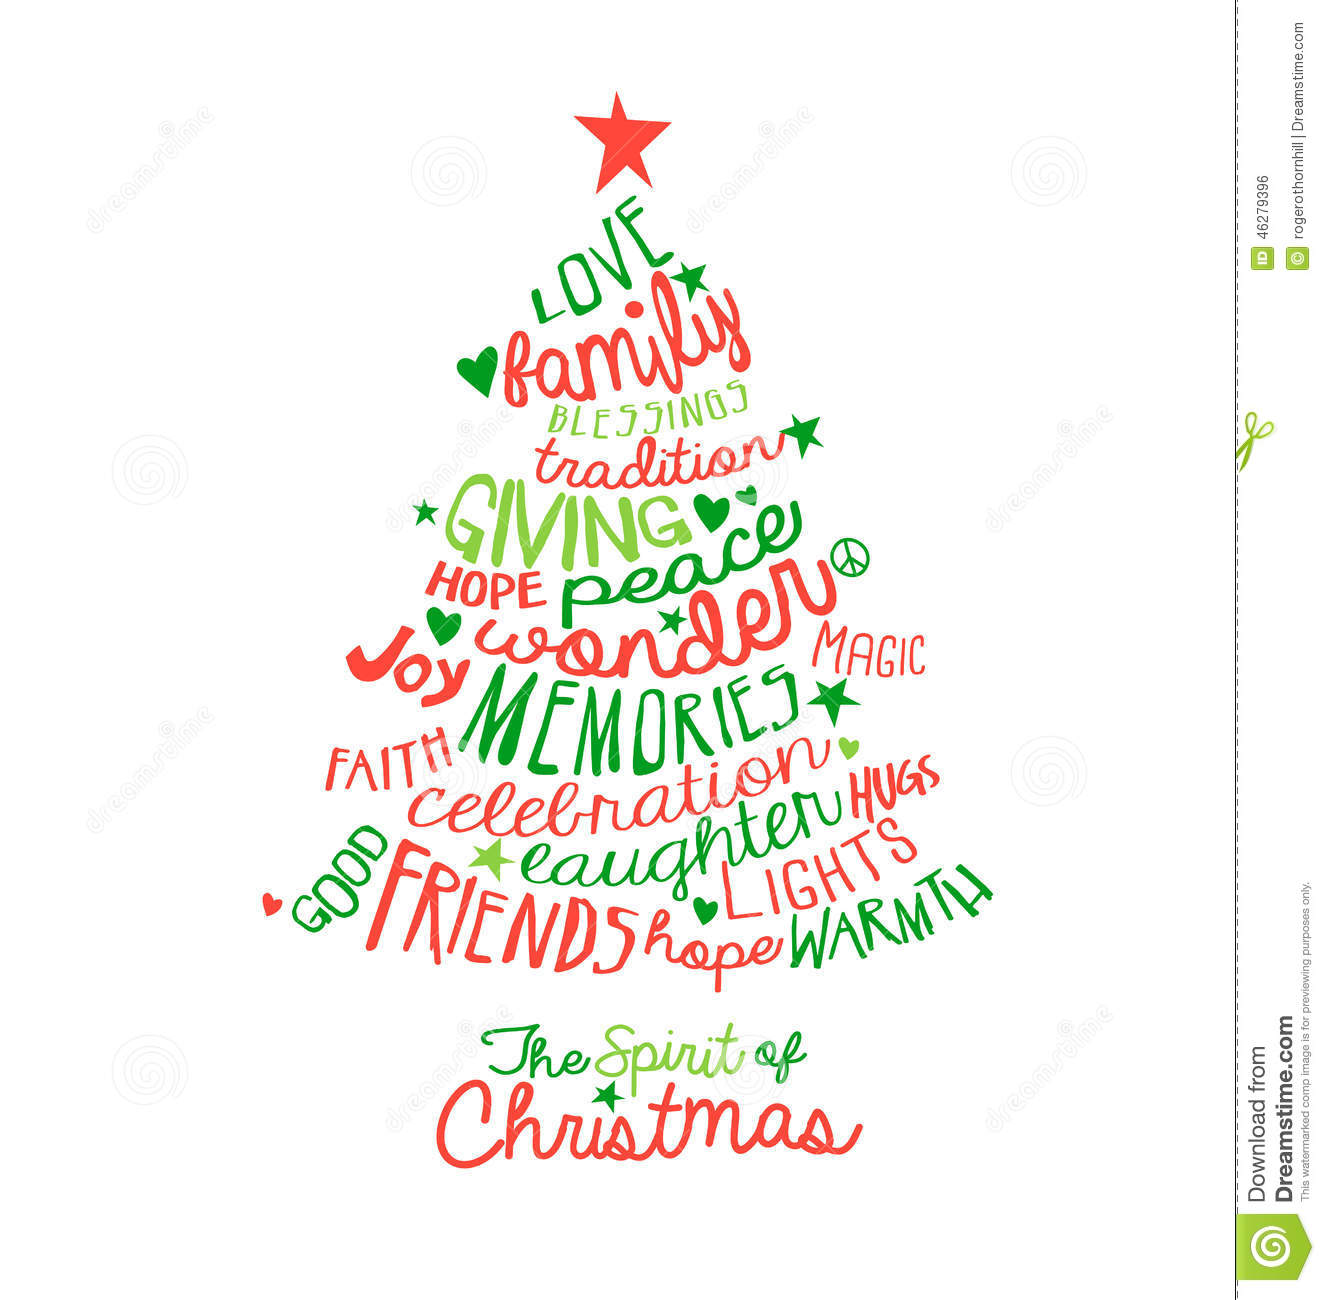 Wonderful Christmas Card Word Cloud Tree Design Intended Christmas Card Templates For Word